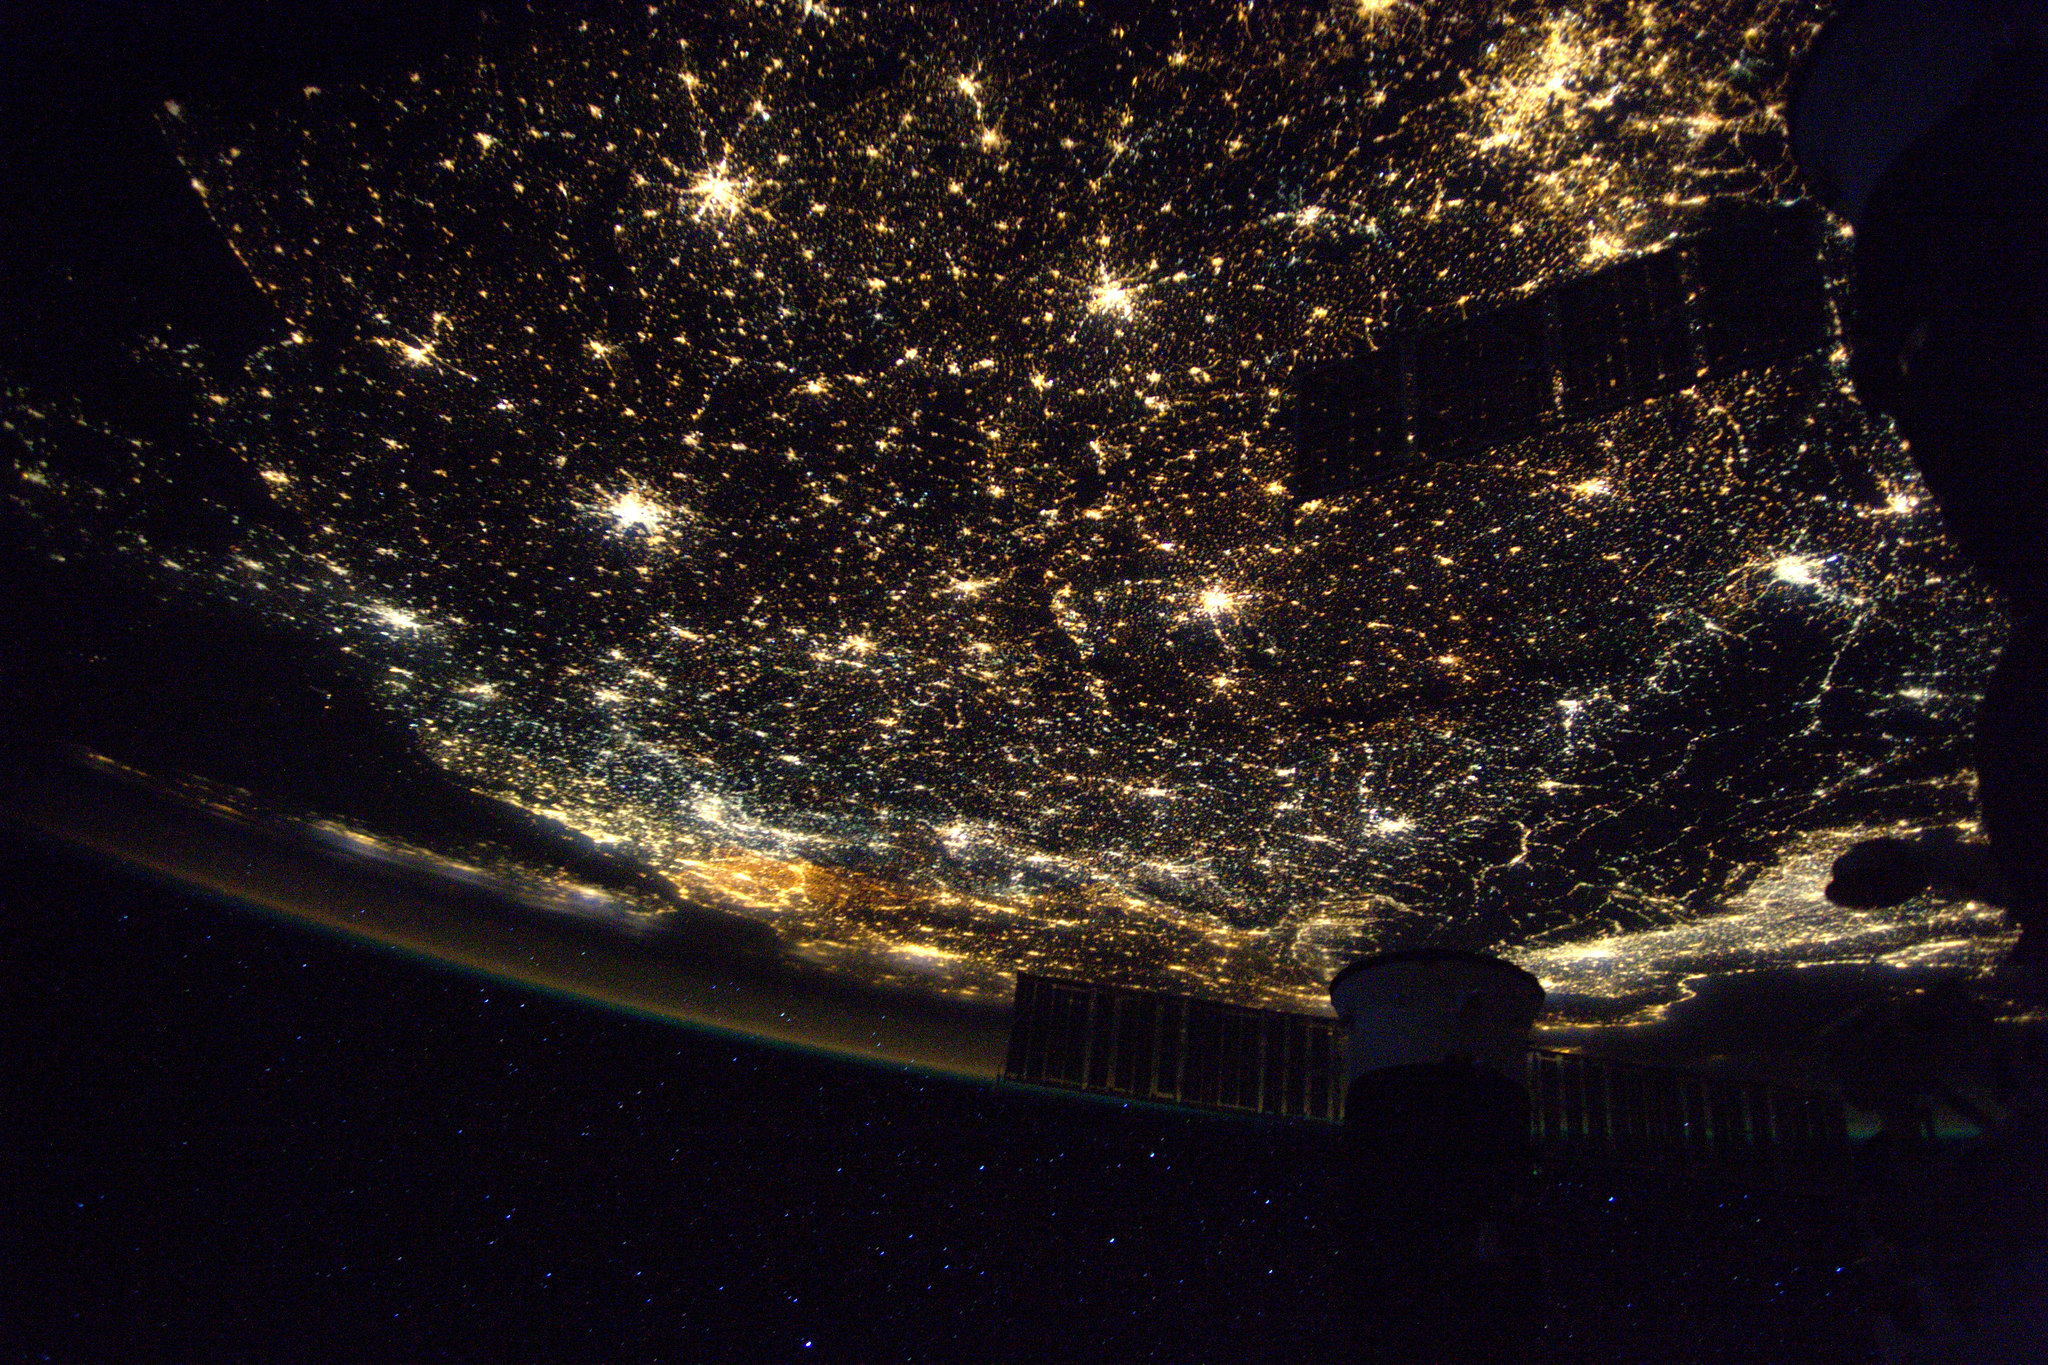 Europe seen at night, captured by a passing Satellite. ( PHOTO NASA/ESA )